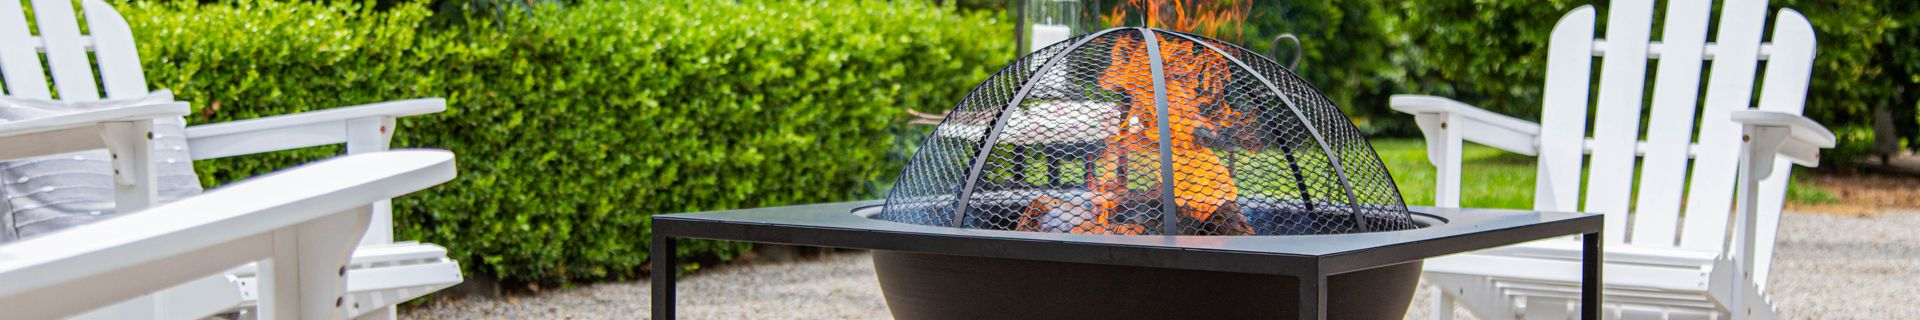 A Glow outdoor fire pit surrounded by outdoor chairs.